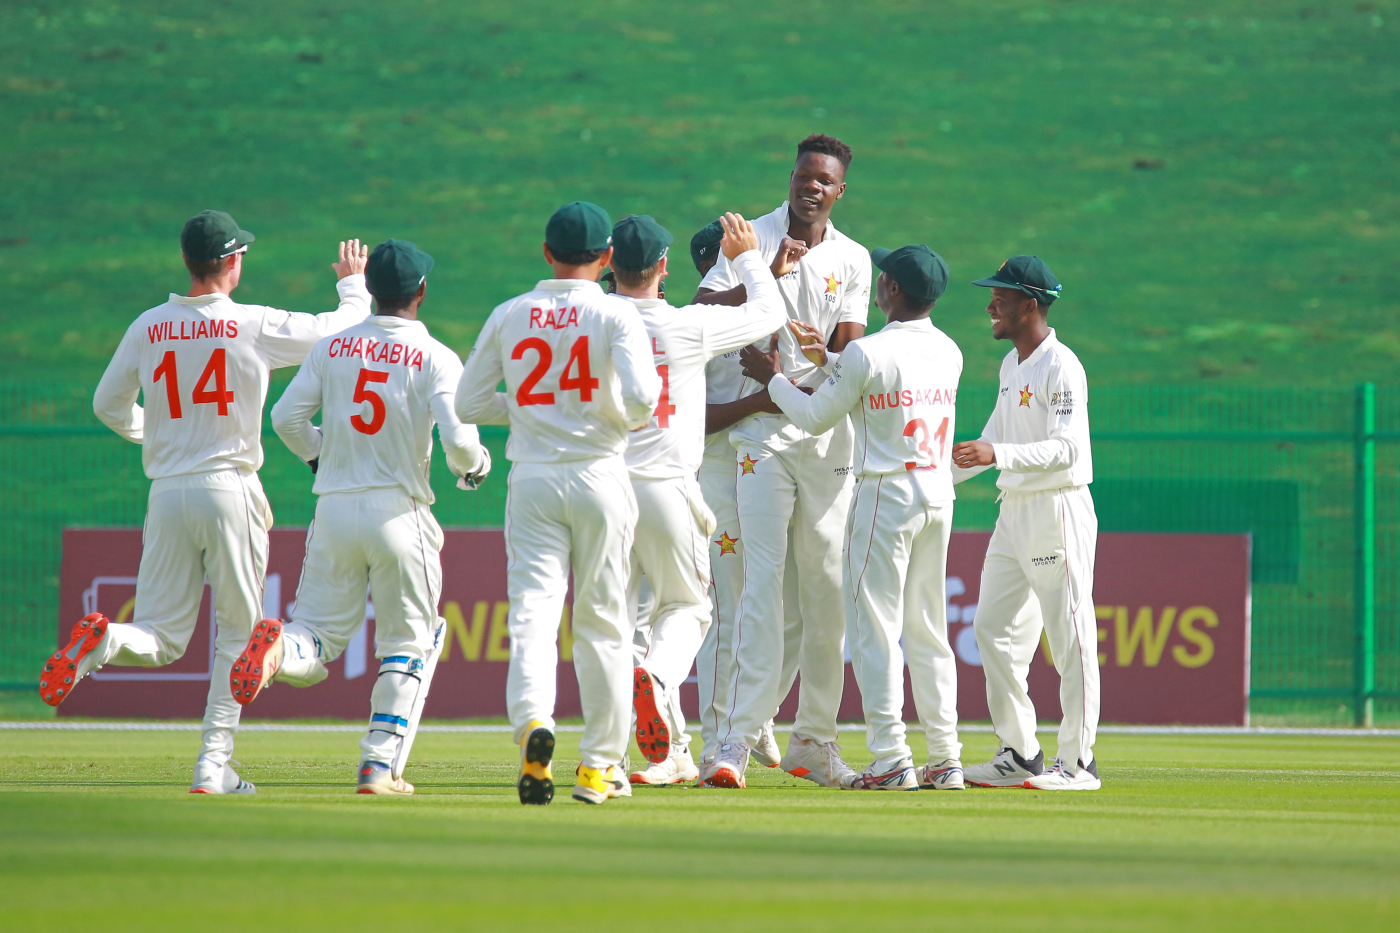 Band of brothers: Zimbabwe's current team is a tight-knit group